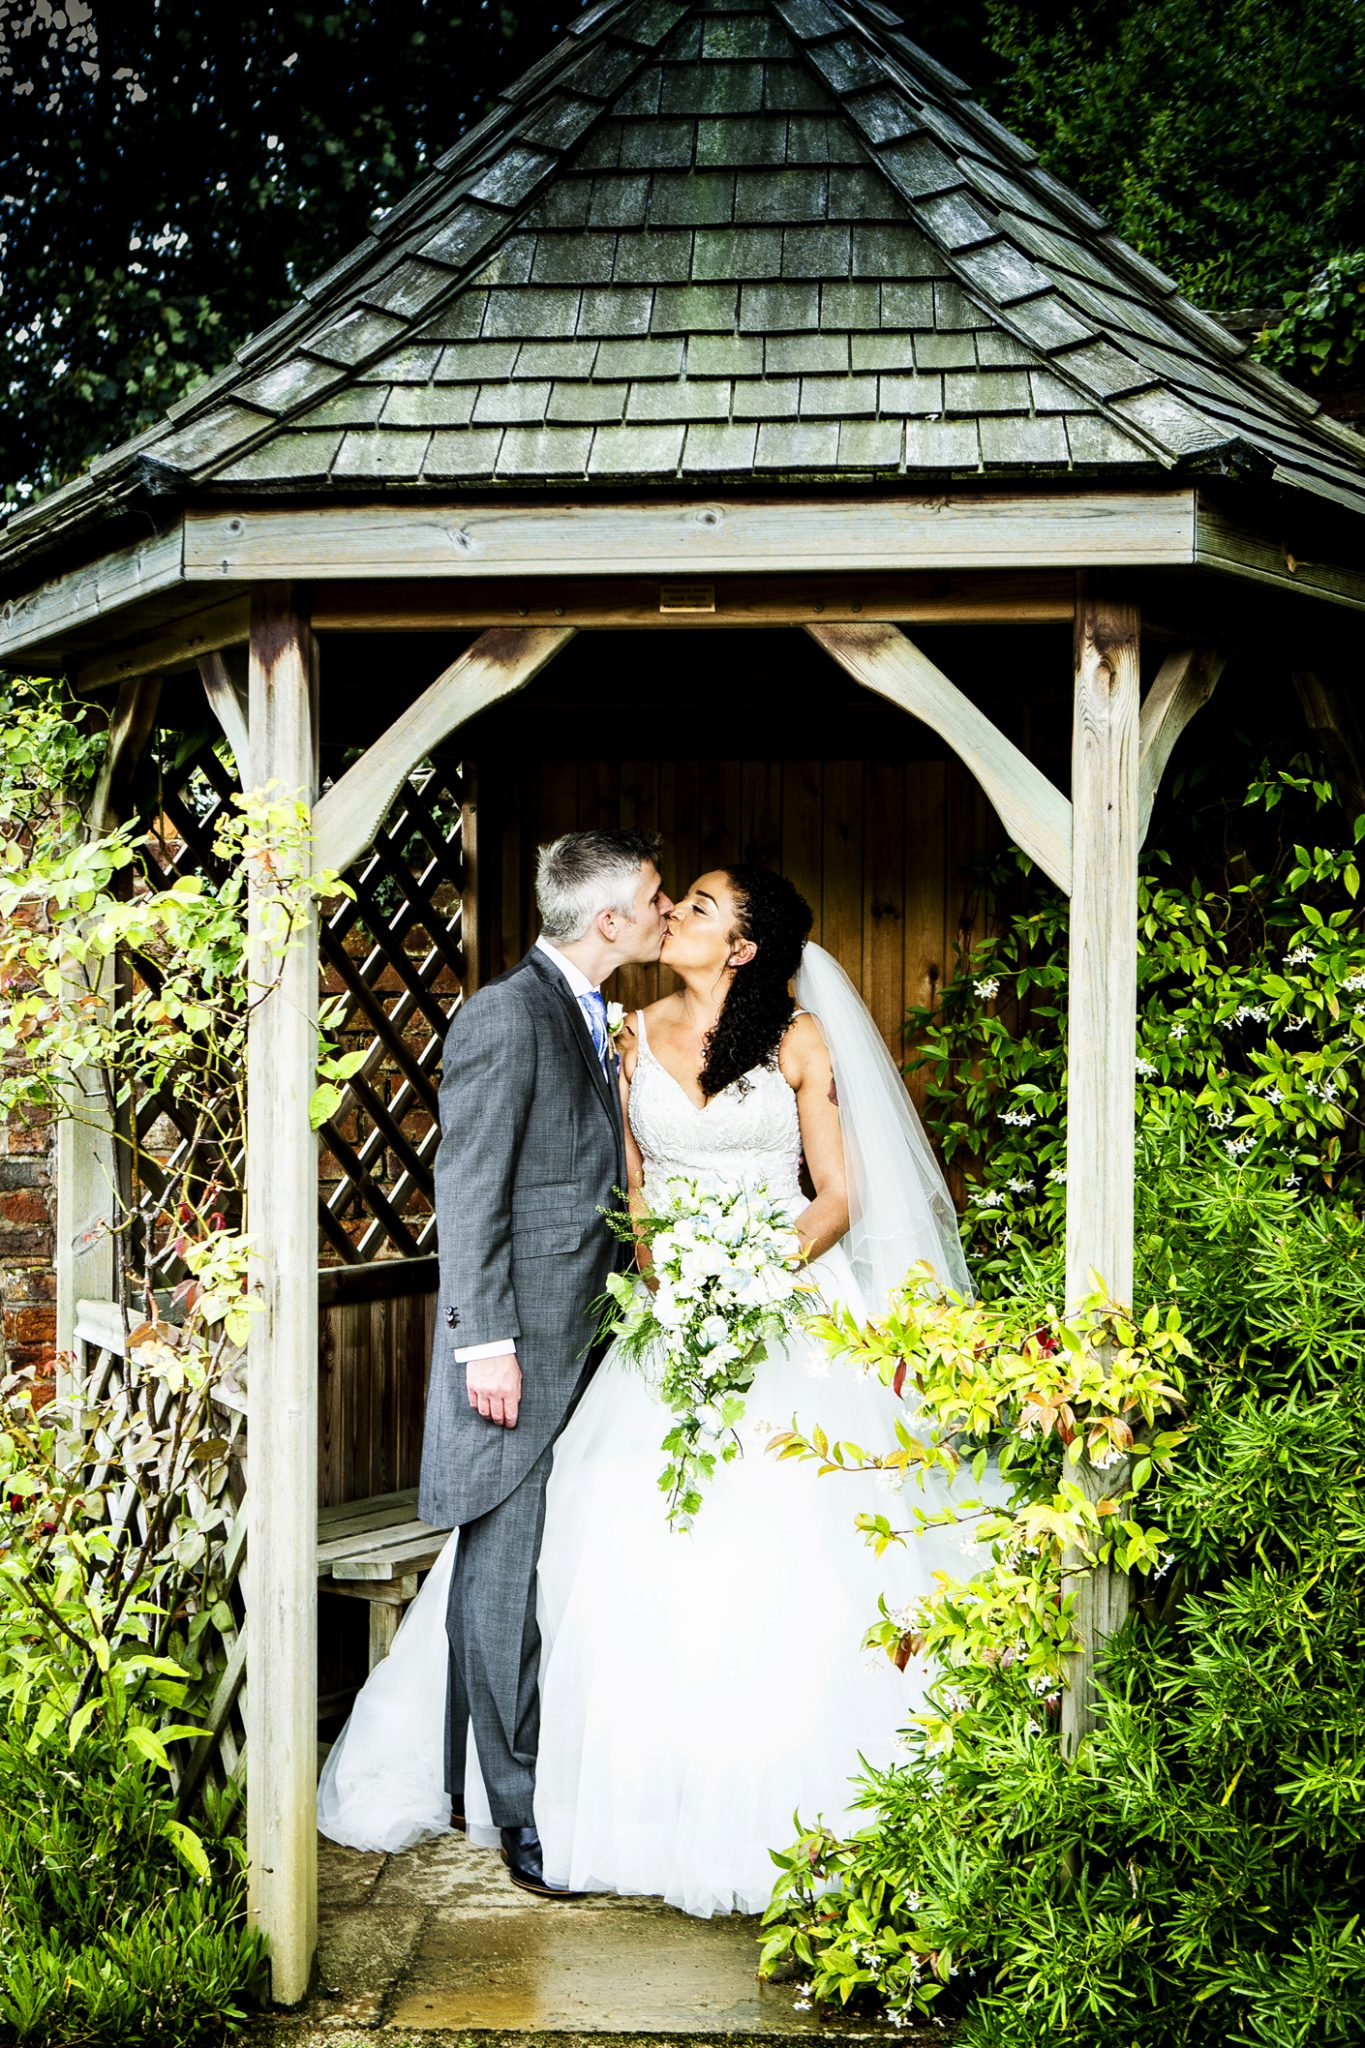 wedding-photography-on-the-grounds-of-adlington-hall-in-cheshire